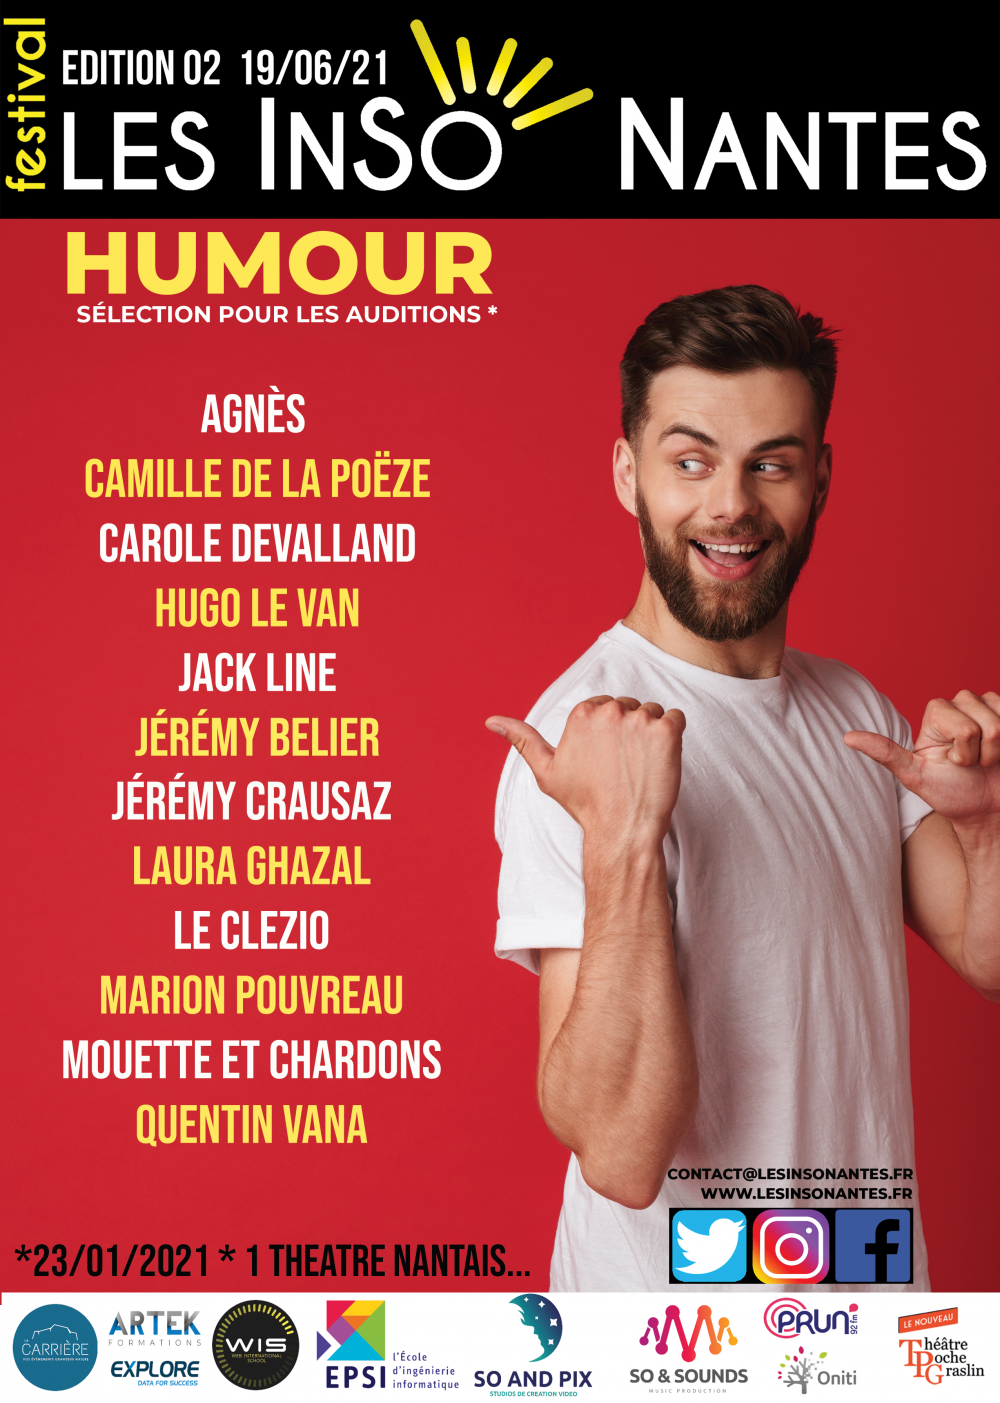 AUDITIONS LESINSONANTES CATÉGORIE HUMOUR STAND UP (Edition 2 - 19/06/2021 )